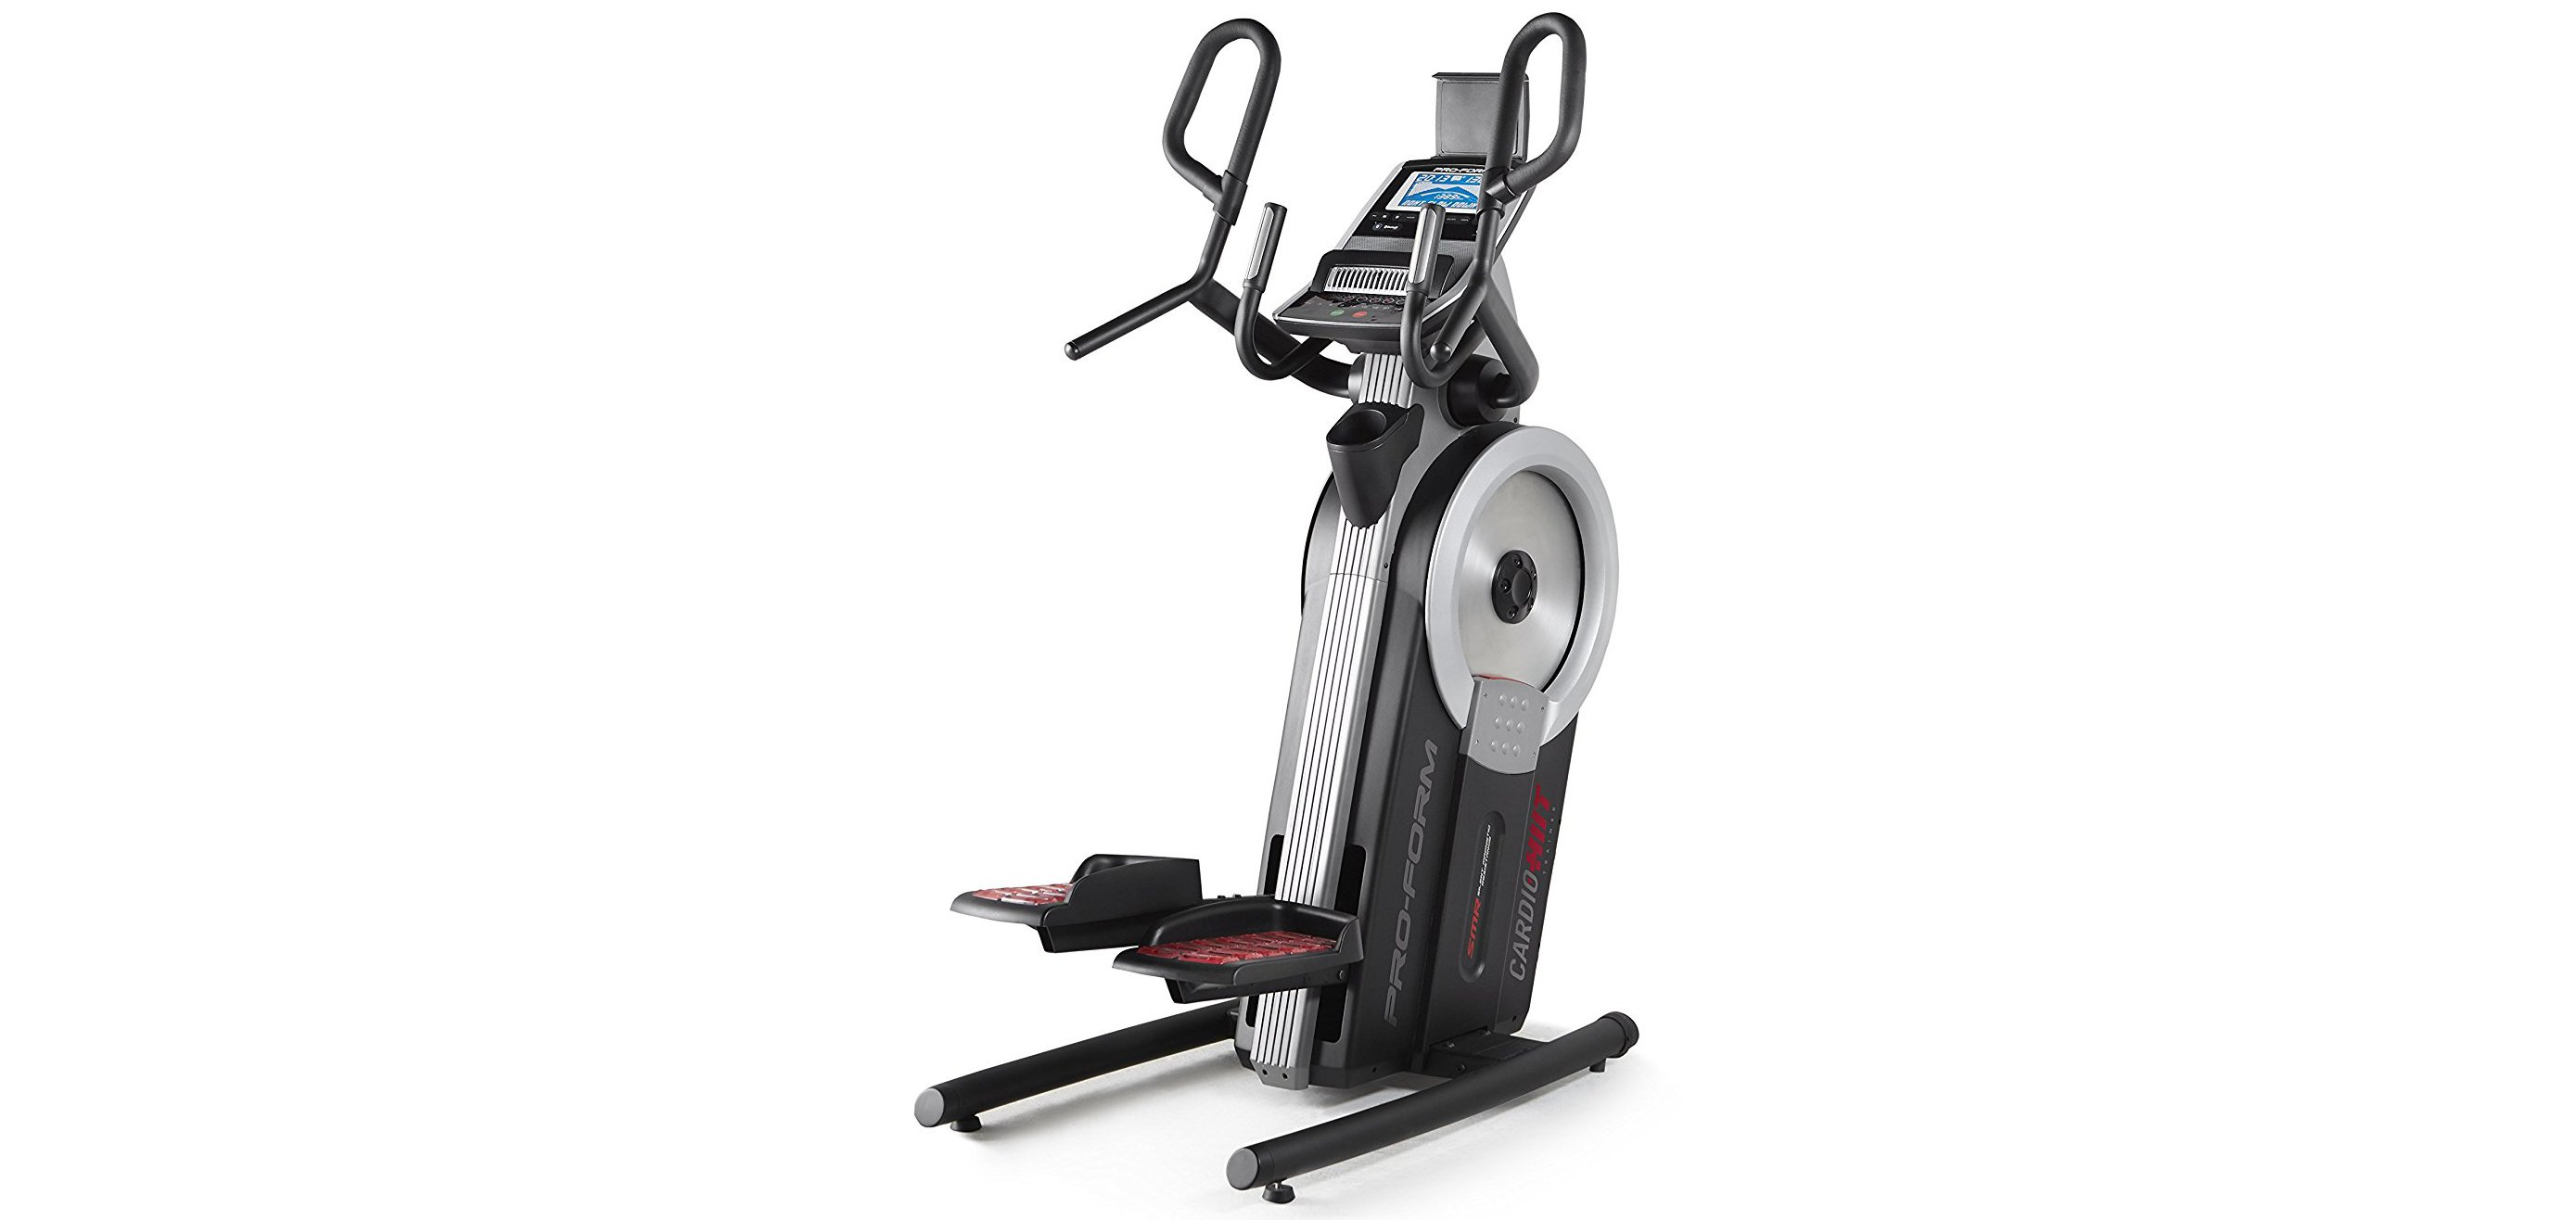 62c9470ed99 If you want to push your heart rate through the roof and burn  scarcely-credible amounts of calories in short bursts on your cross-trainer